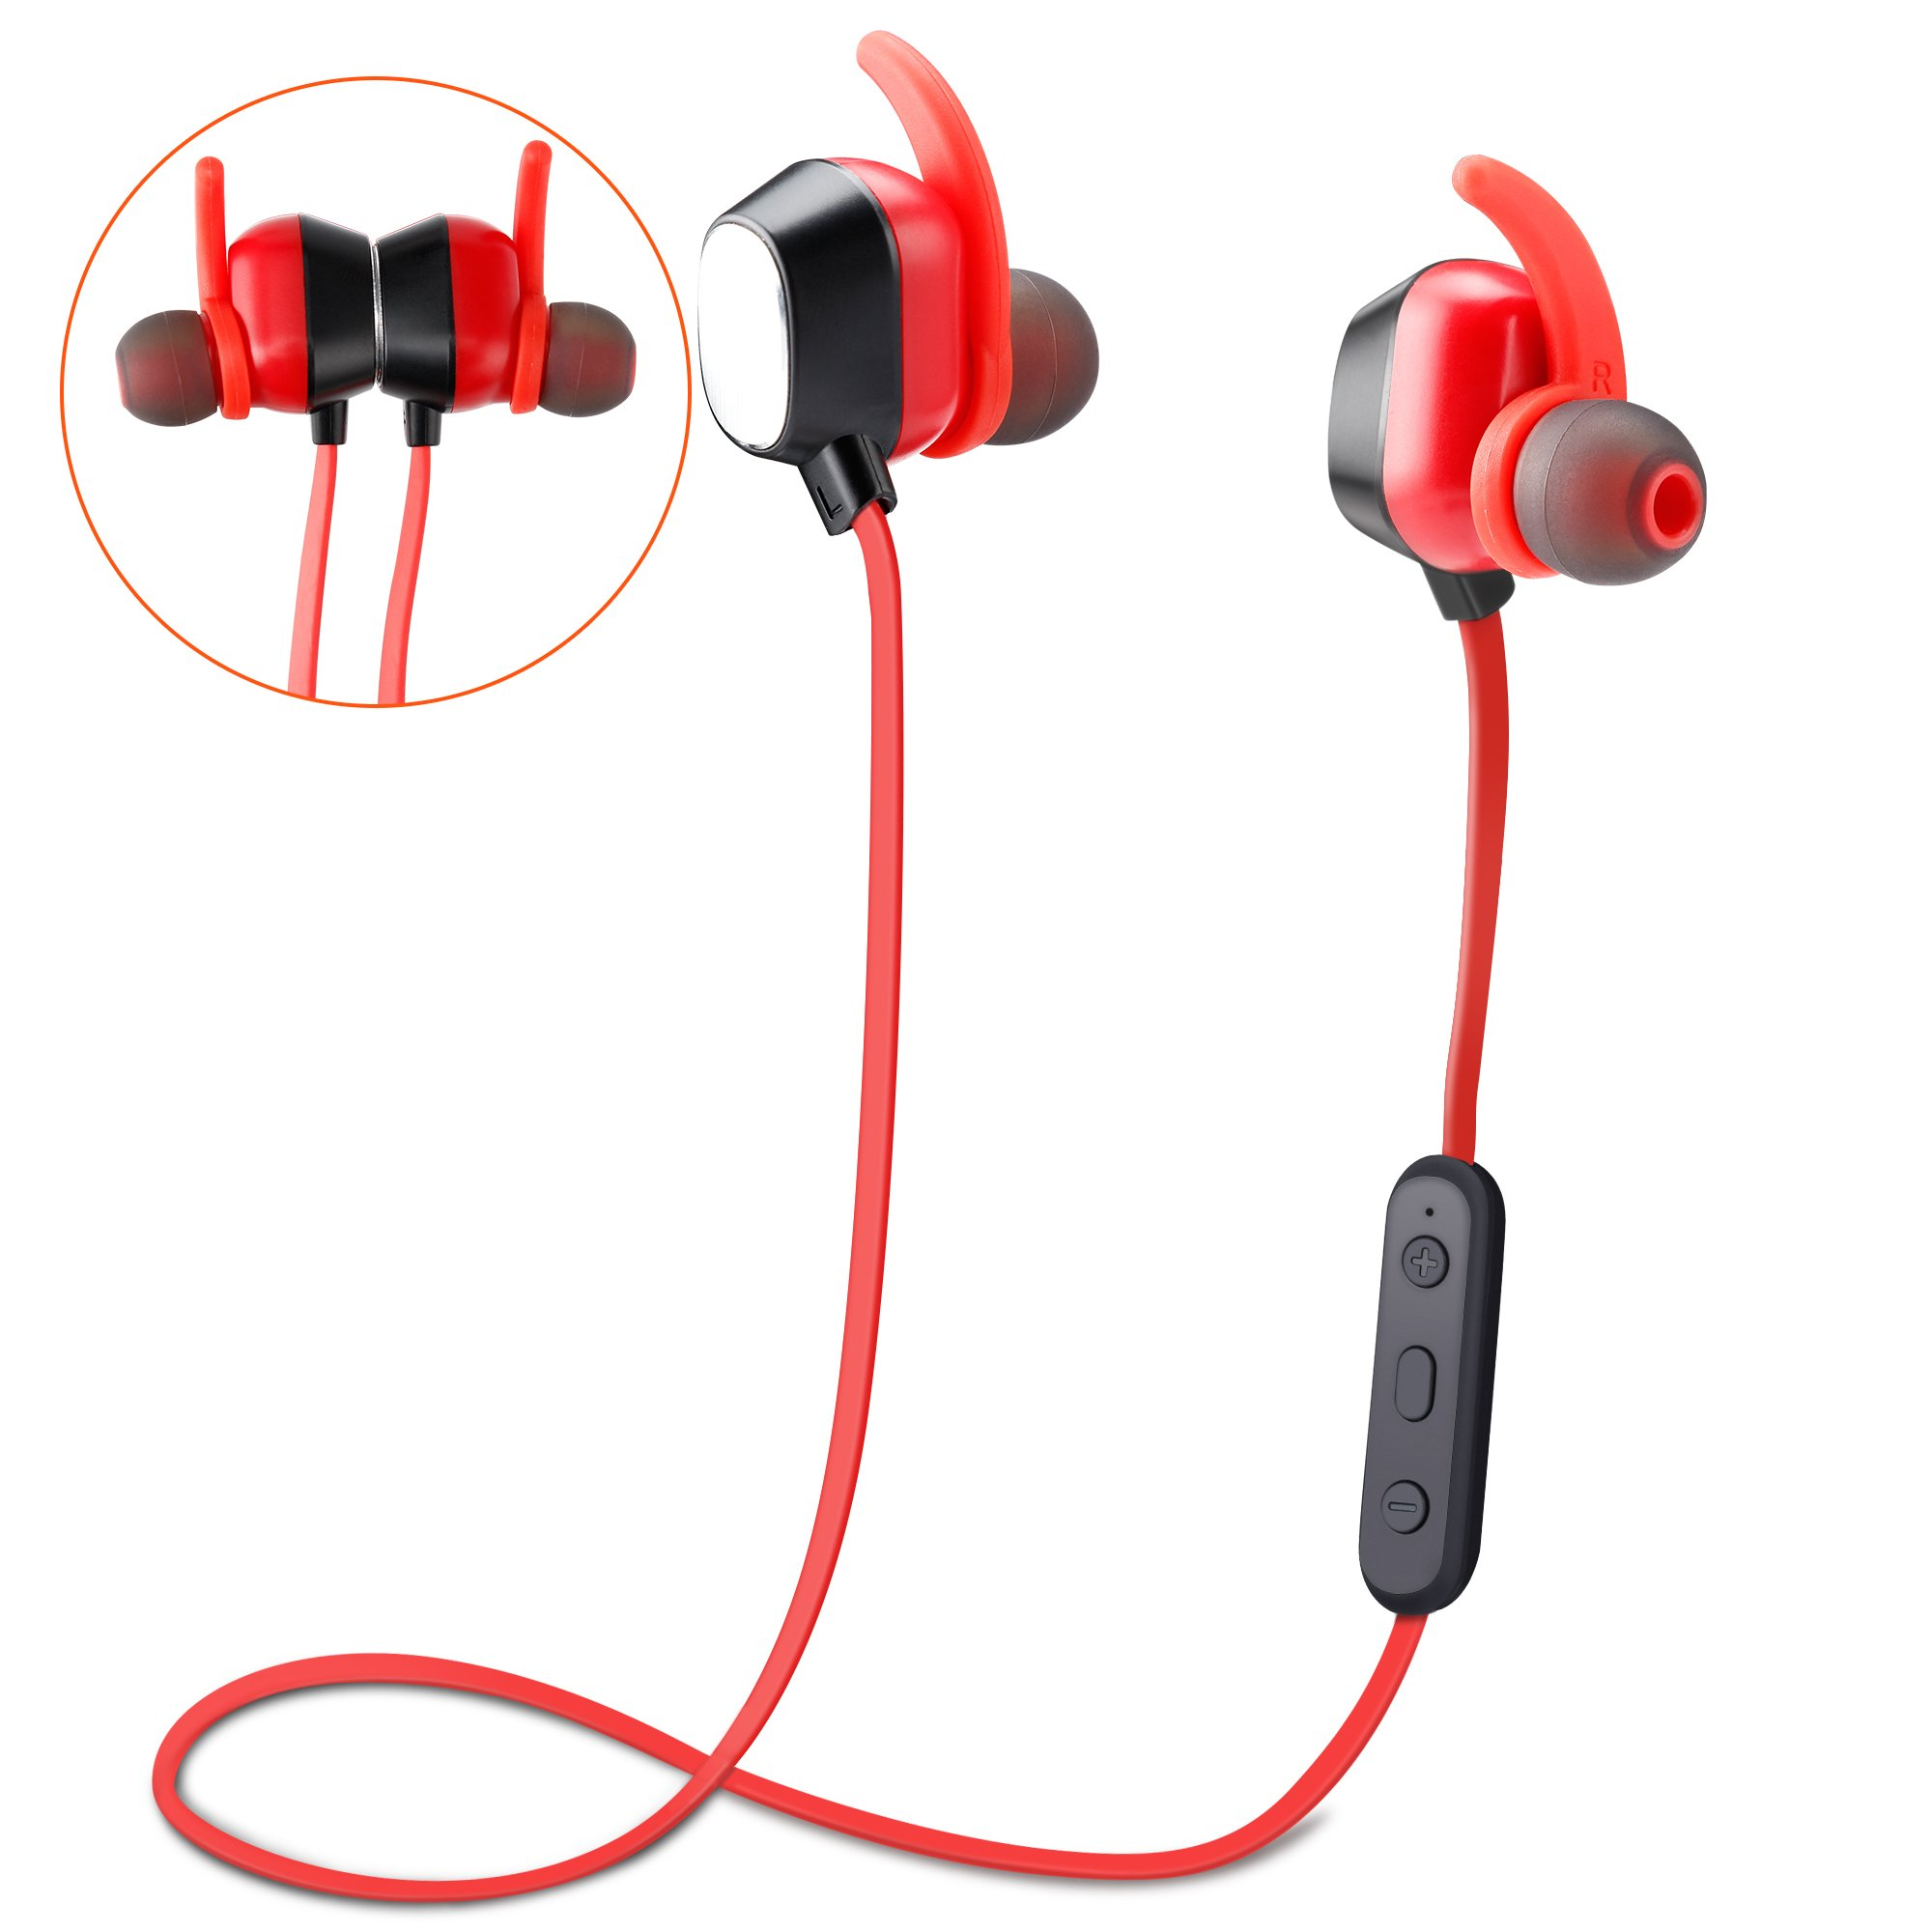 Bluetooth Headphones, YYQ Wireless 4.2 Magnetic Earbuds Magnetic Sweatproof Stereo Earphones for Sports with Built in Mic 6h Play Time Noise Cancelling - Red by YYQ